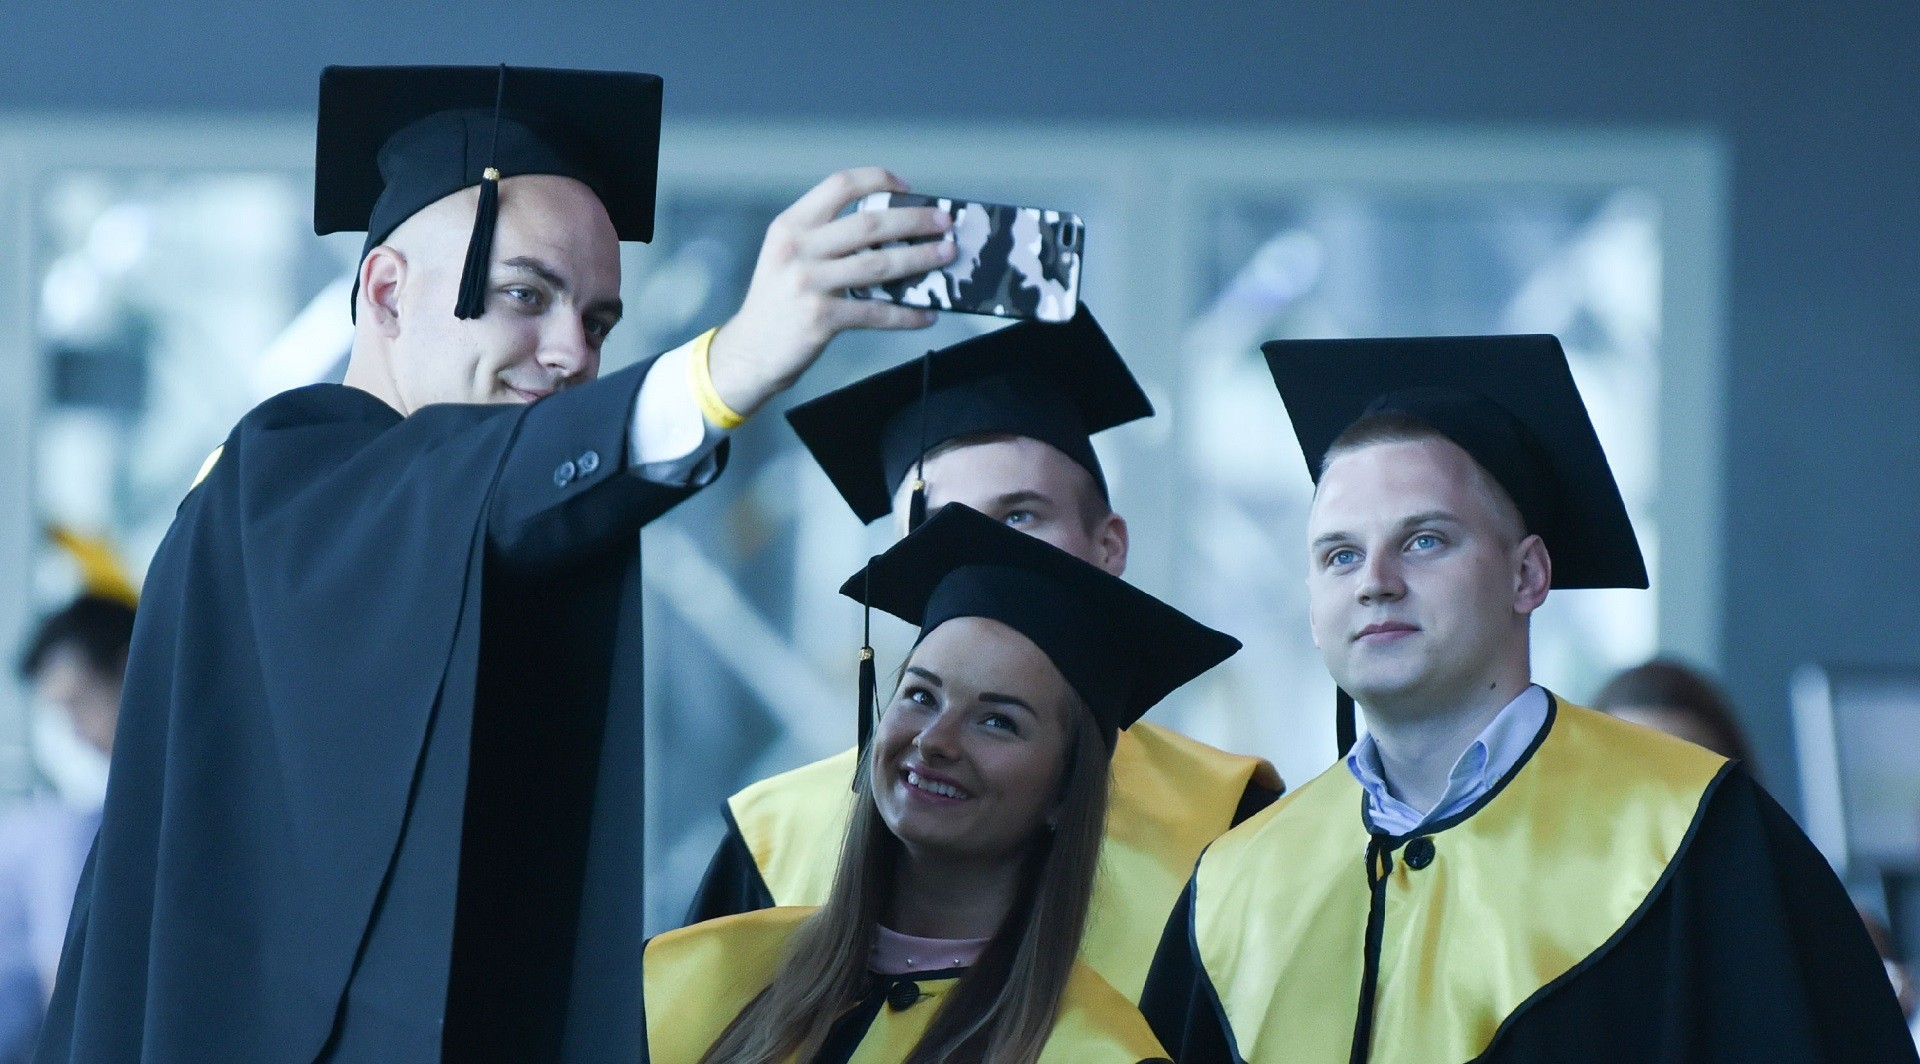 RTU Graduates celebrate the graduation of the university in the Grand Graduation